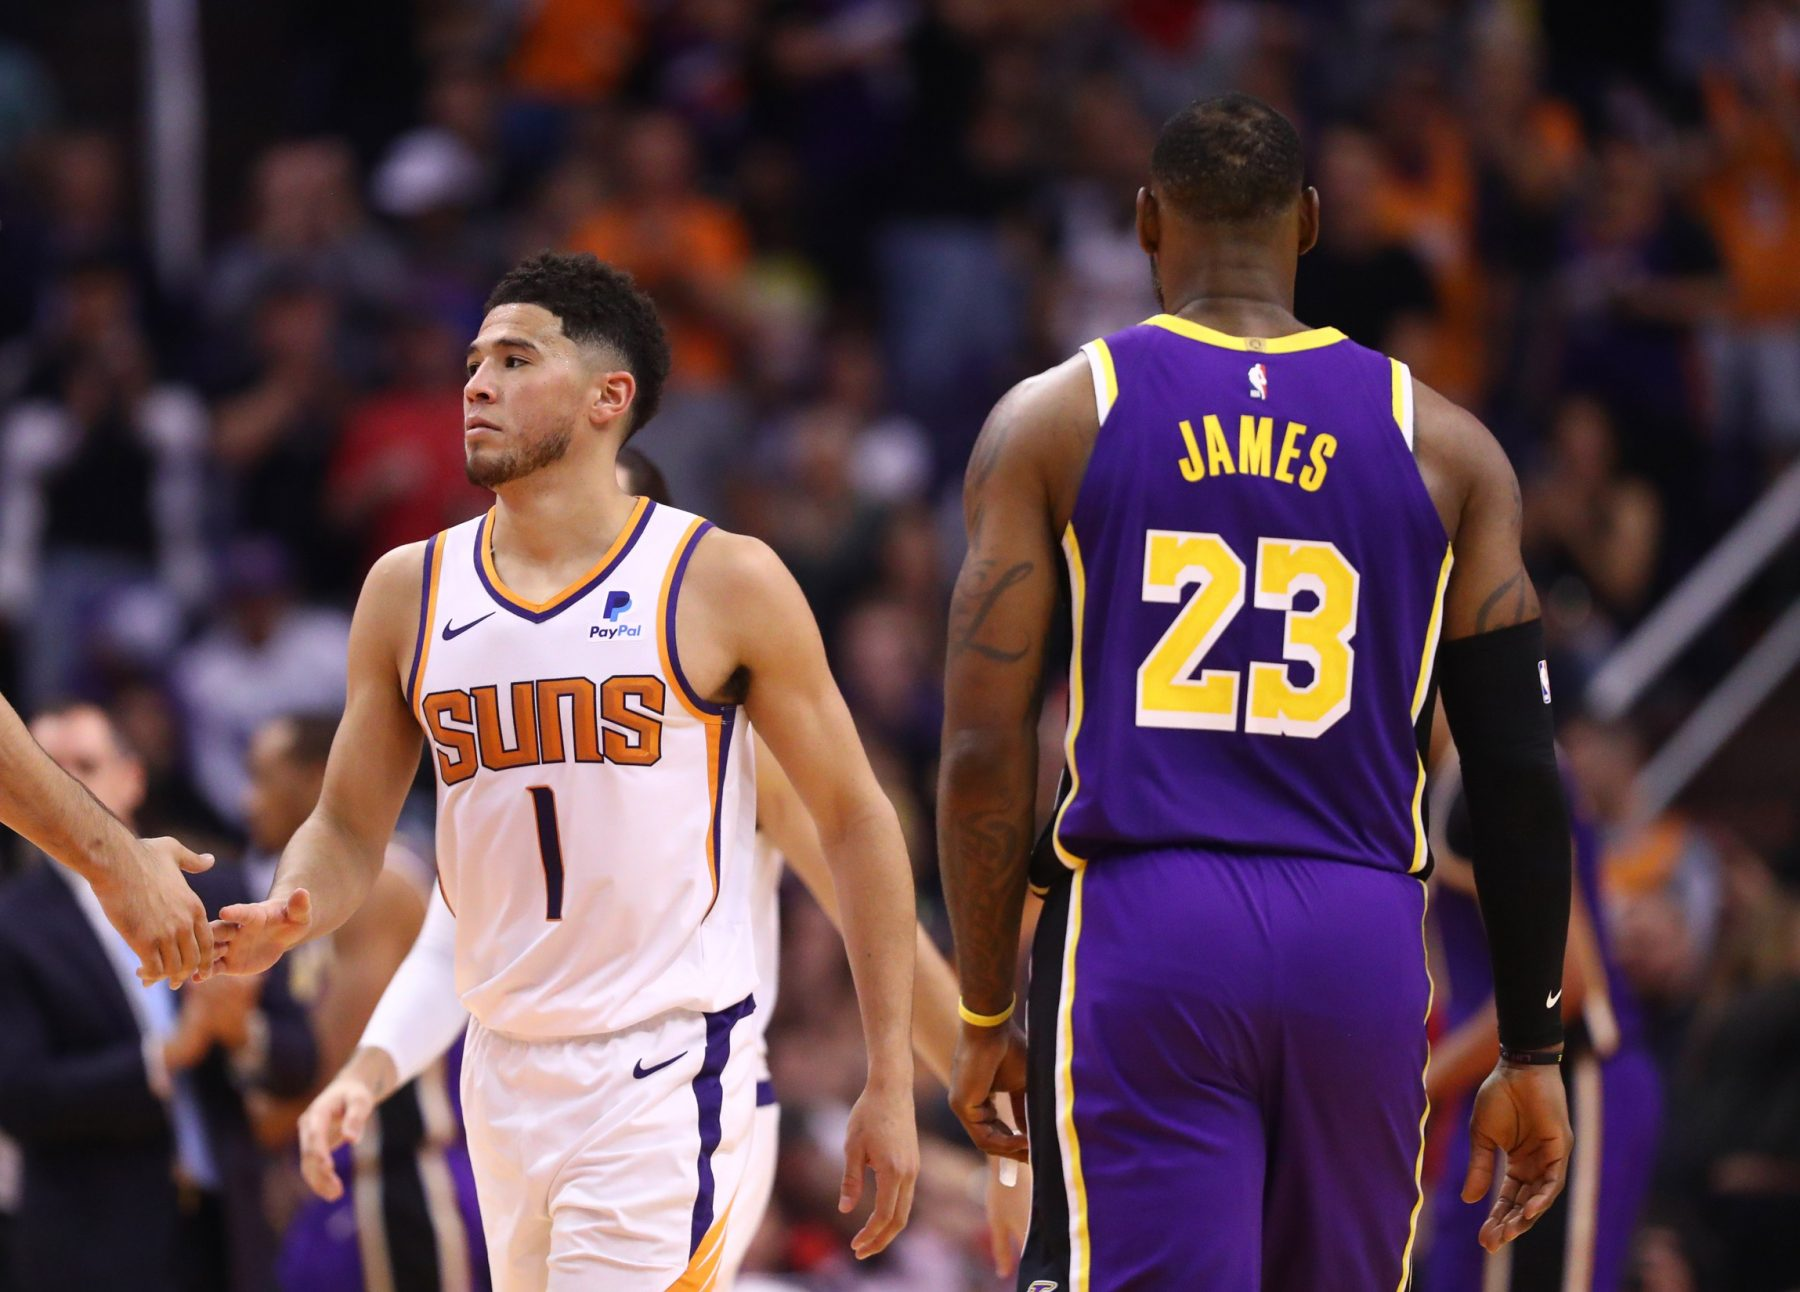 Lakers Superstar LeBron James Salutes Devin Booker With Emphatic Shout-Out After His Incredible Buzzer-Beater - Lakers Daily